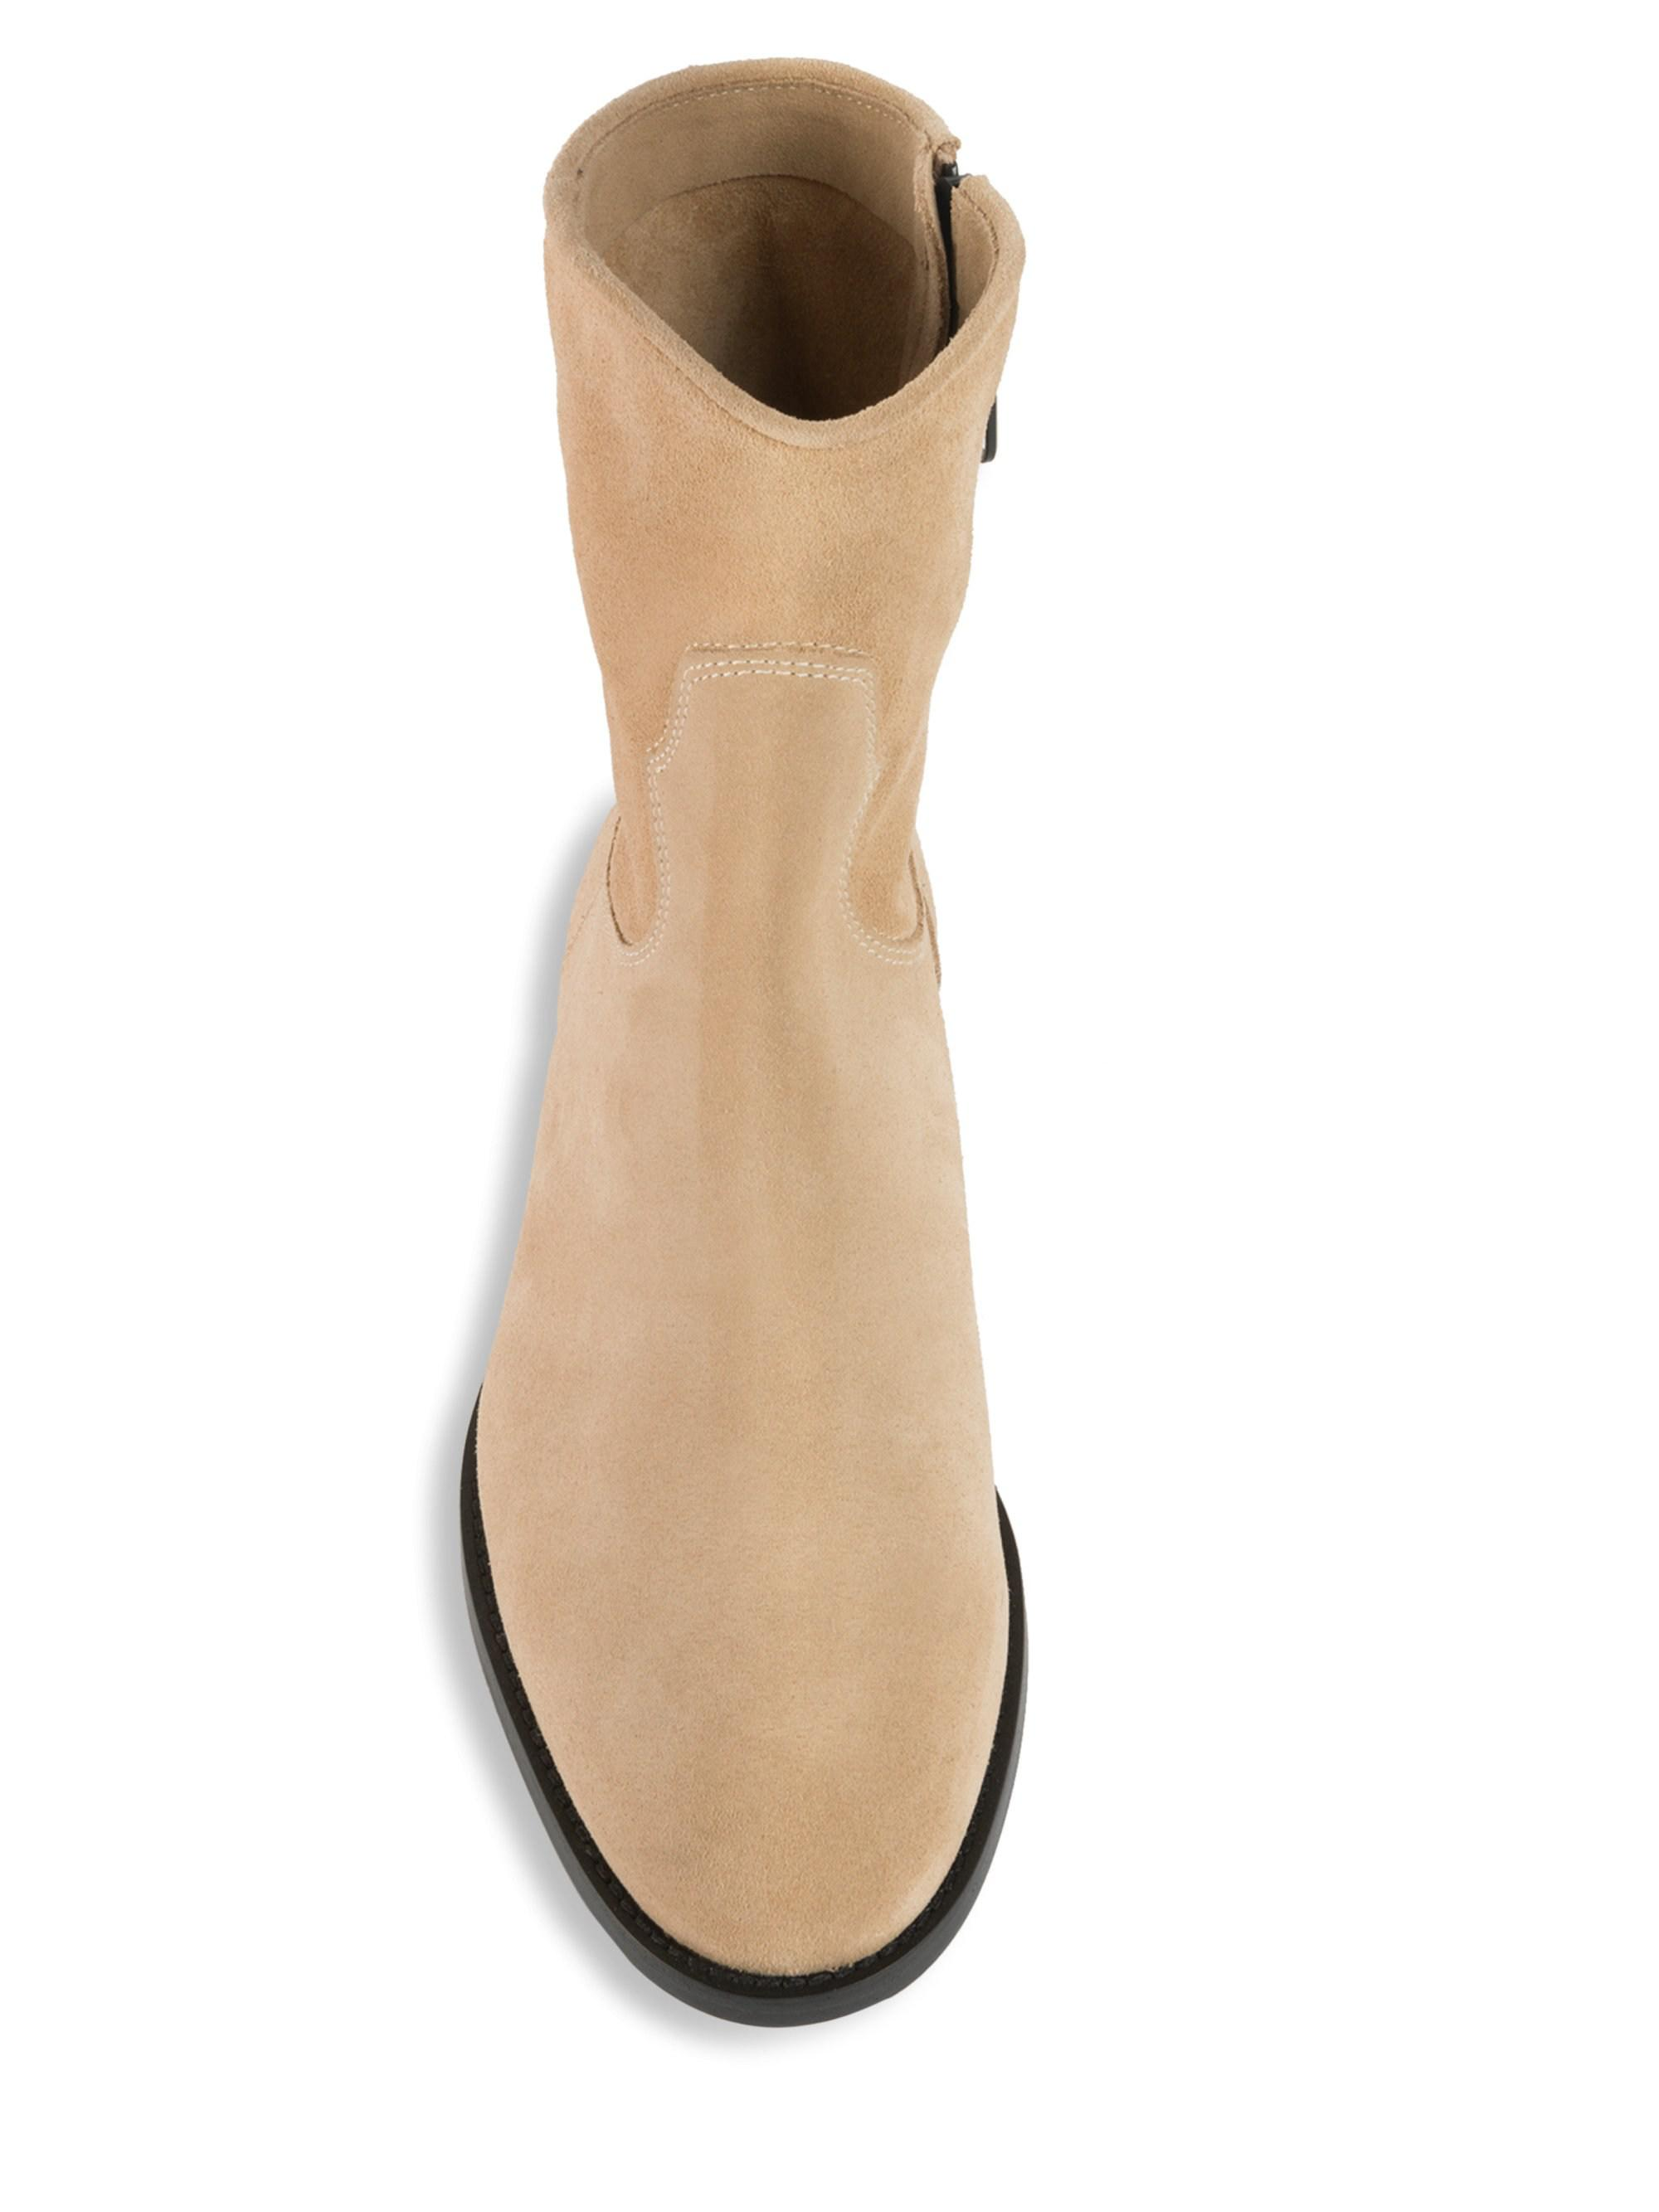 3bac8e145d4 Off-White c/o Virgil Abloh Paperclip Chelsea Suede Boots in Natural ...